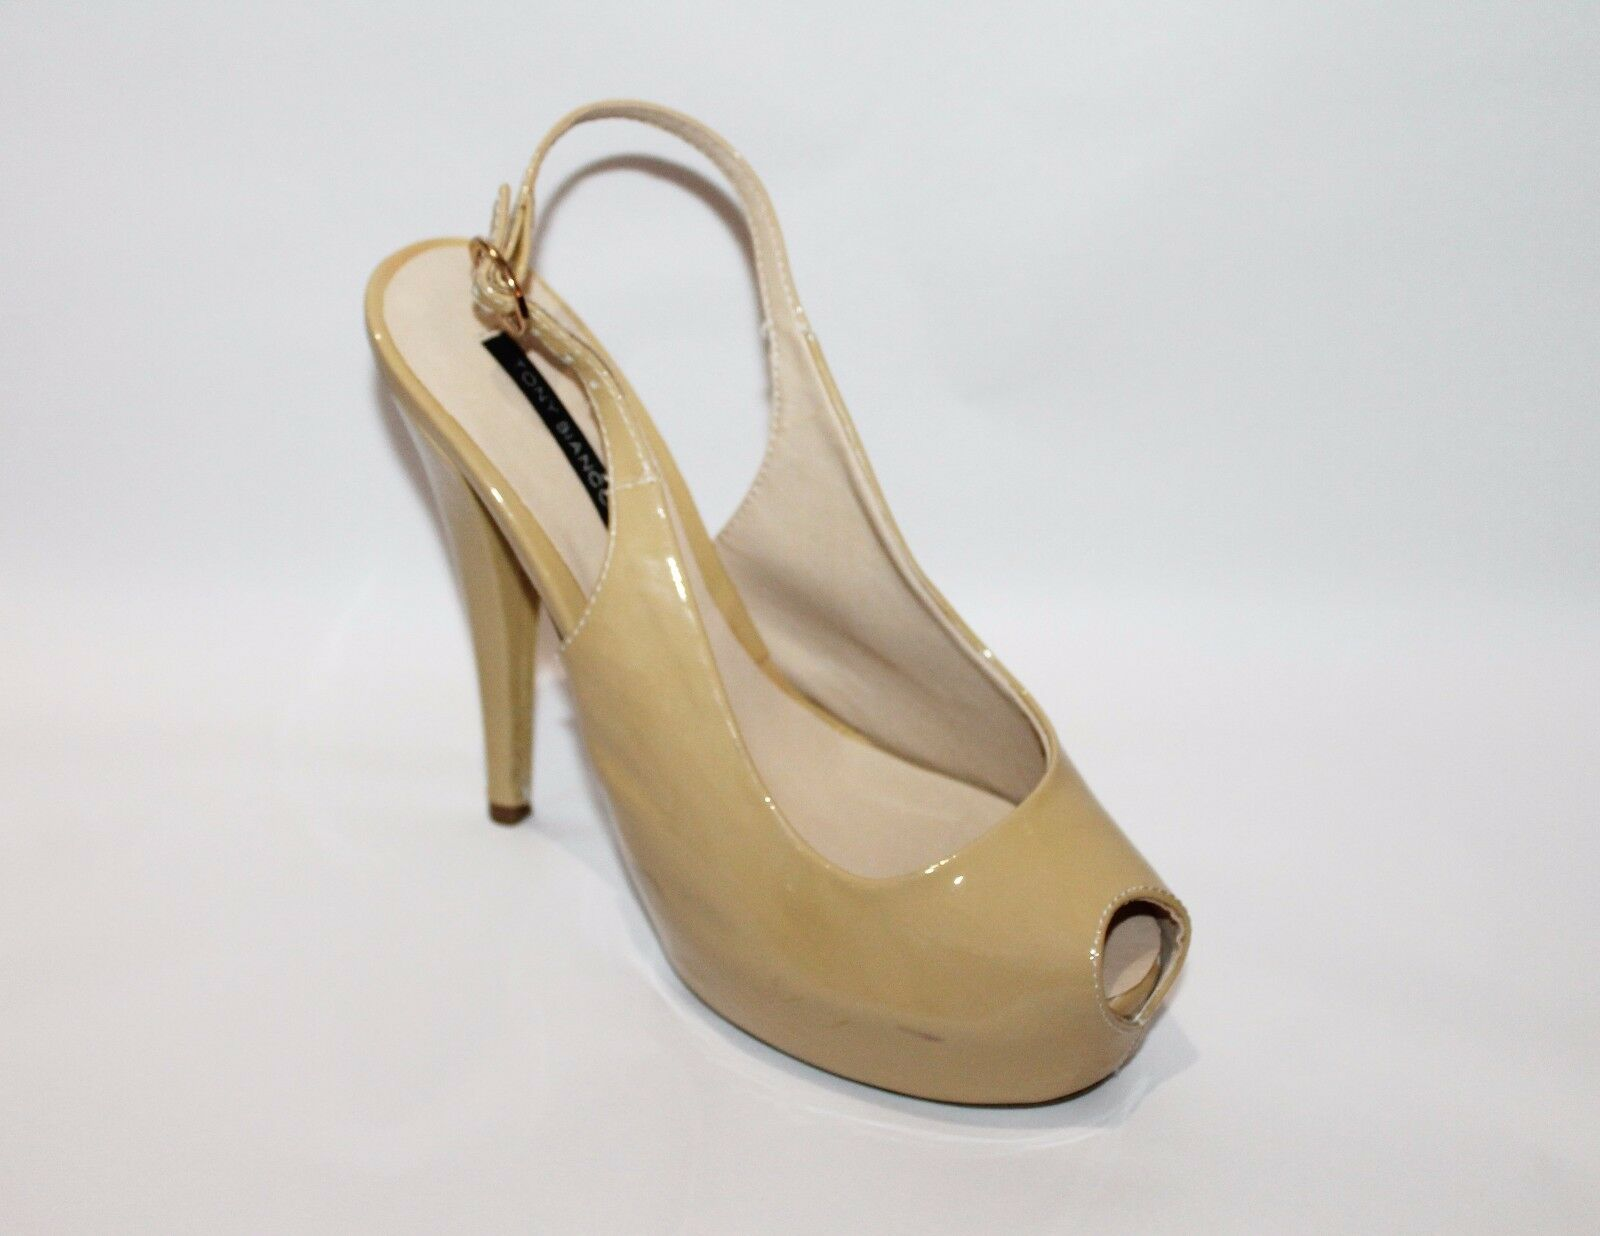 TONY BIANCO Designer Heels Champagne Deauville Patent Leather Heels Designer Size 6.5 a2d295